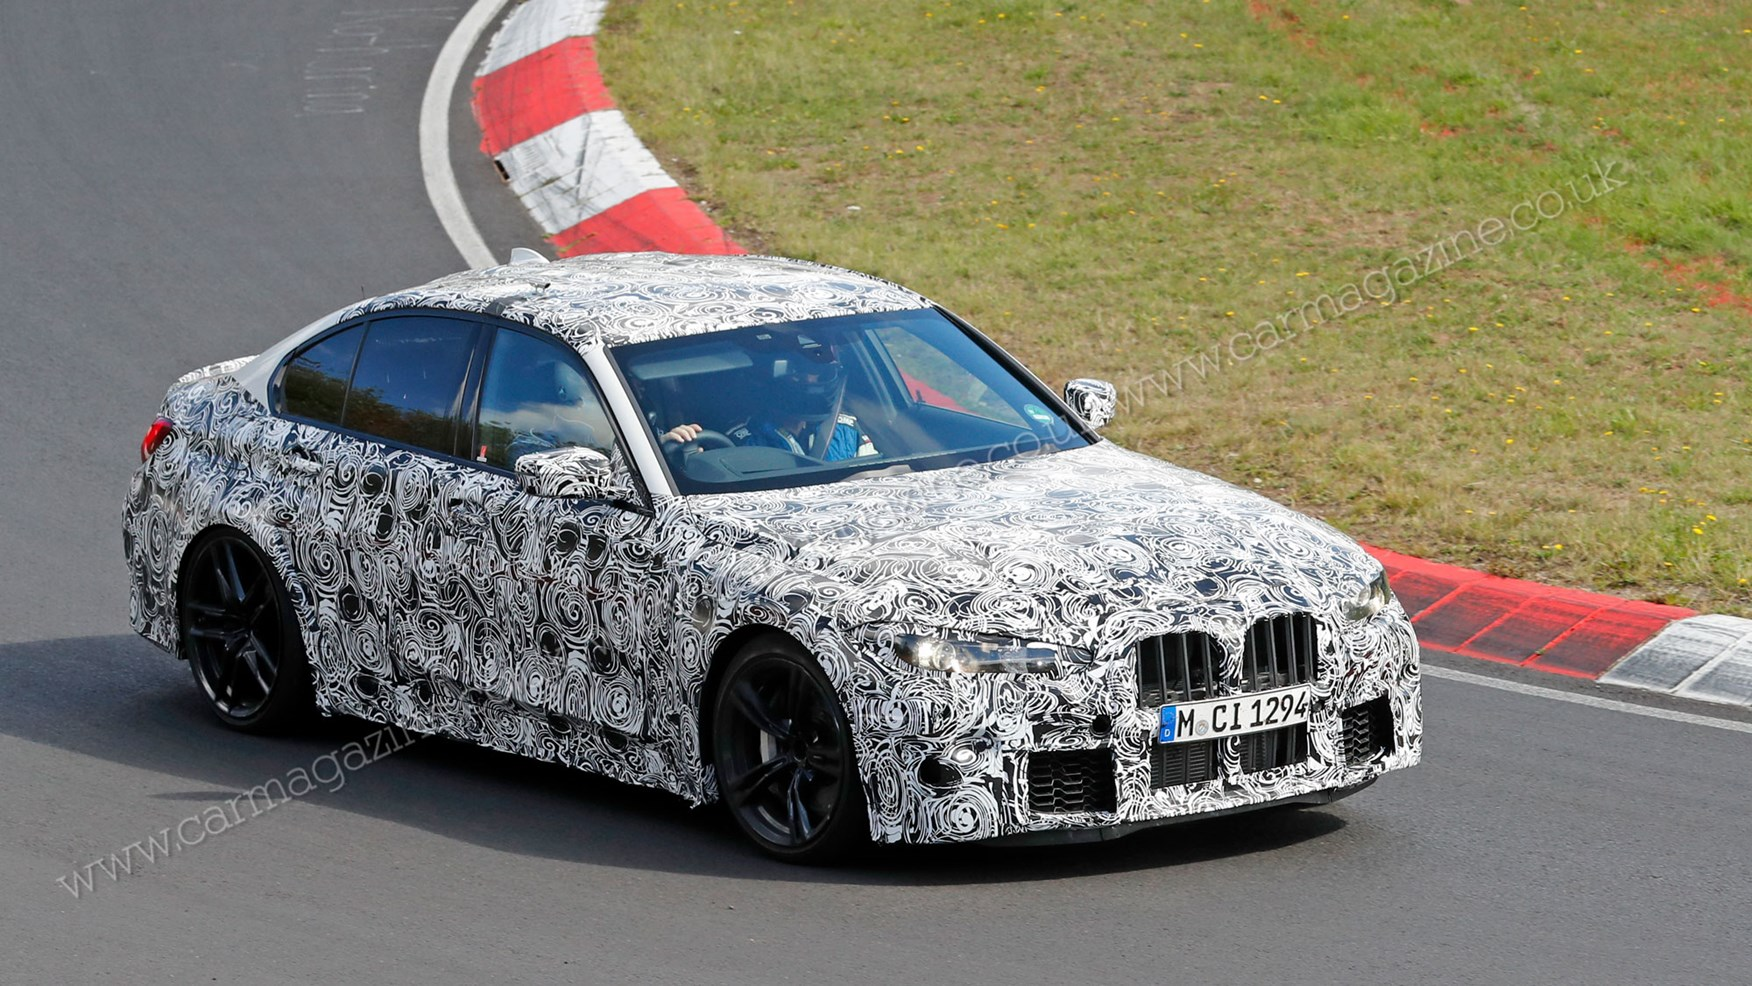 63 Concept of 2020 Bmw M3 Awd Model for 2020 Bmw M3 Awd